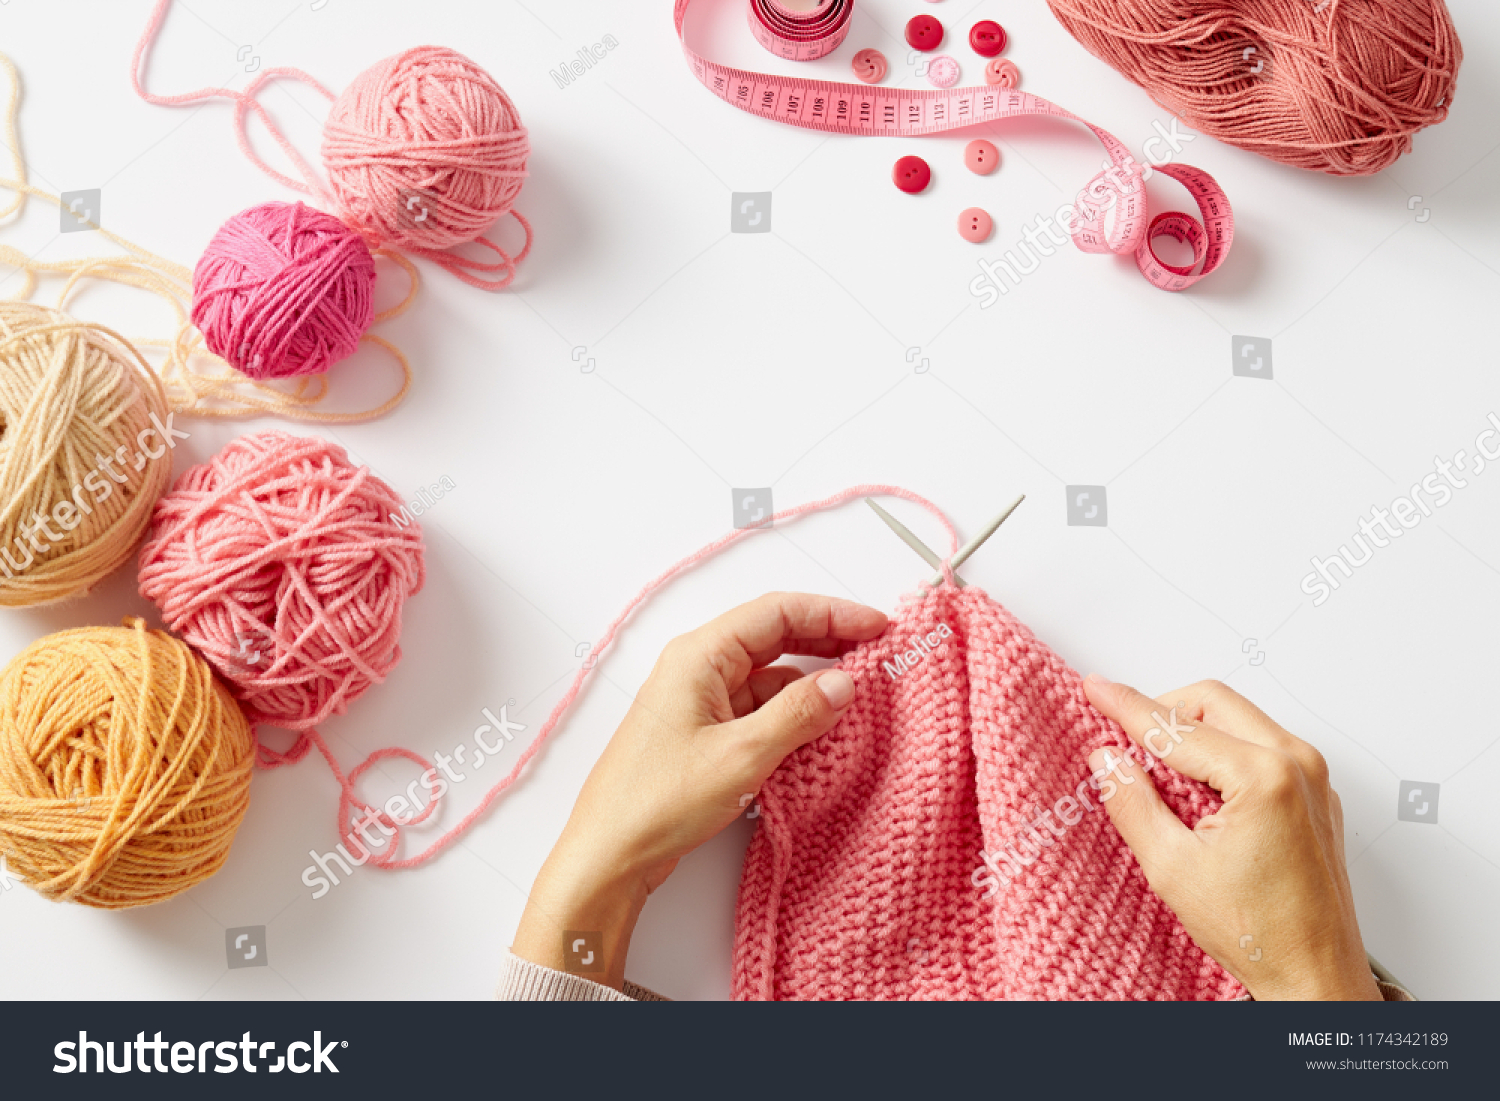 Female hands knitting with pink wool, on a white background, top view